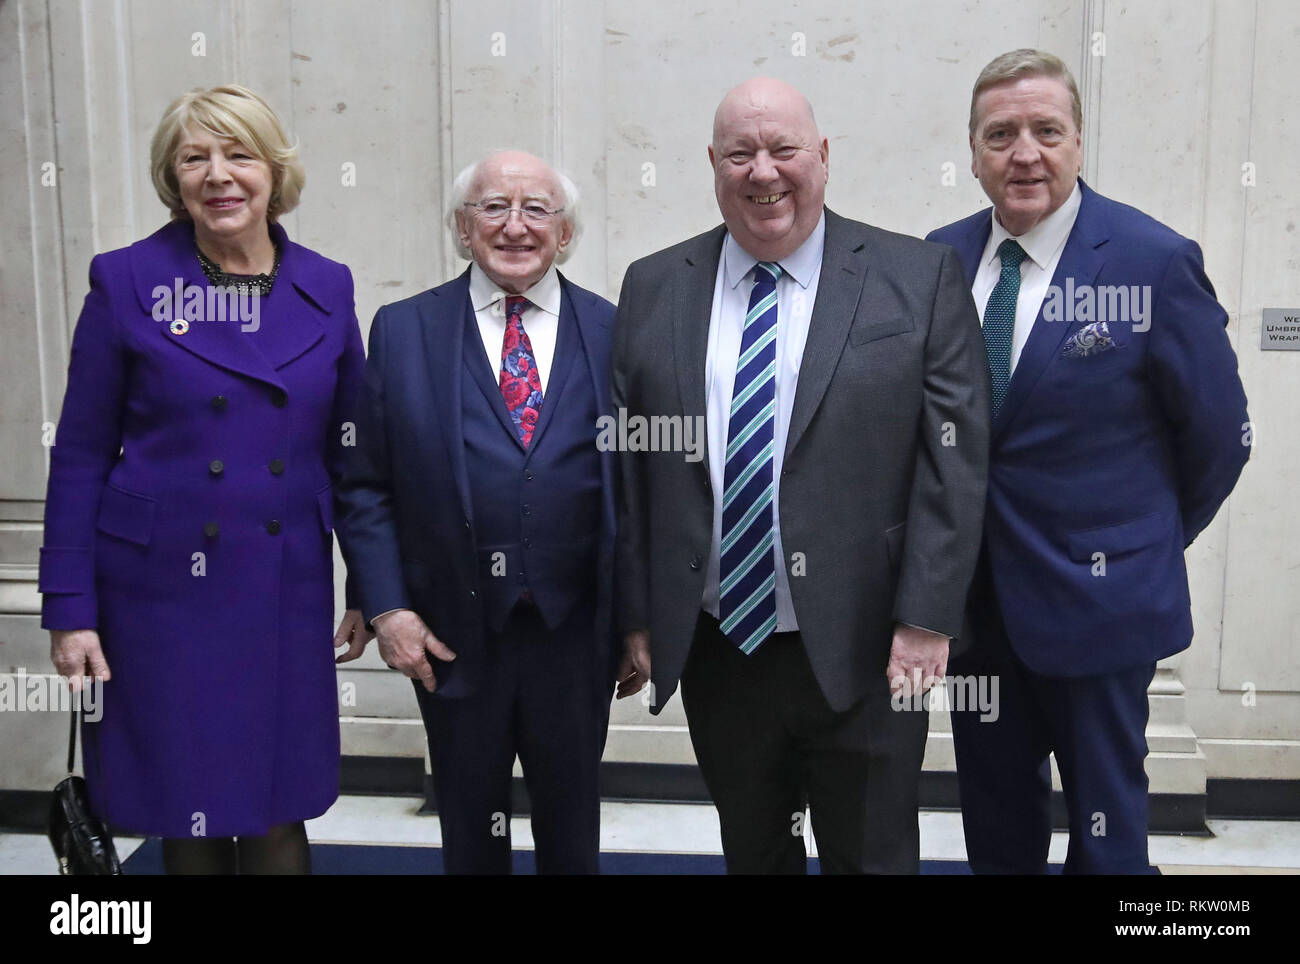 Irish President Michael D Higgins and Sabina Coyne meet Mayor of Liverpool, Joe Anderson (2nd right) and minister Pat Breen (right) at the British Music Experience in Liverpool on the second day of an official visit to the UK. - Stock Image